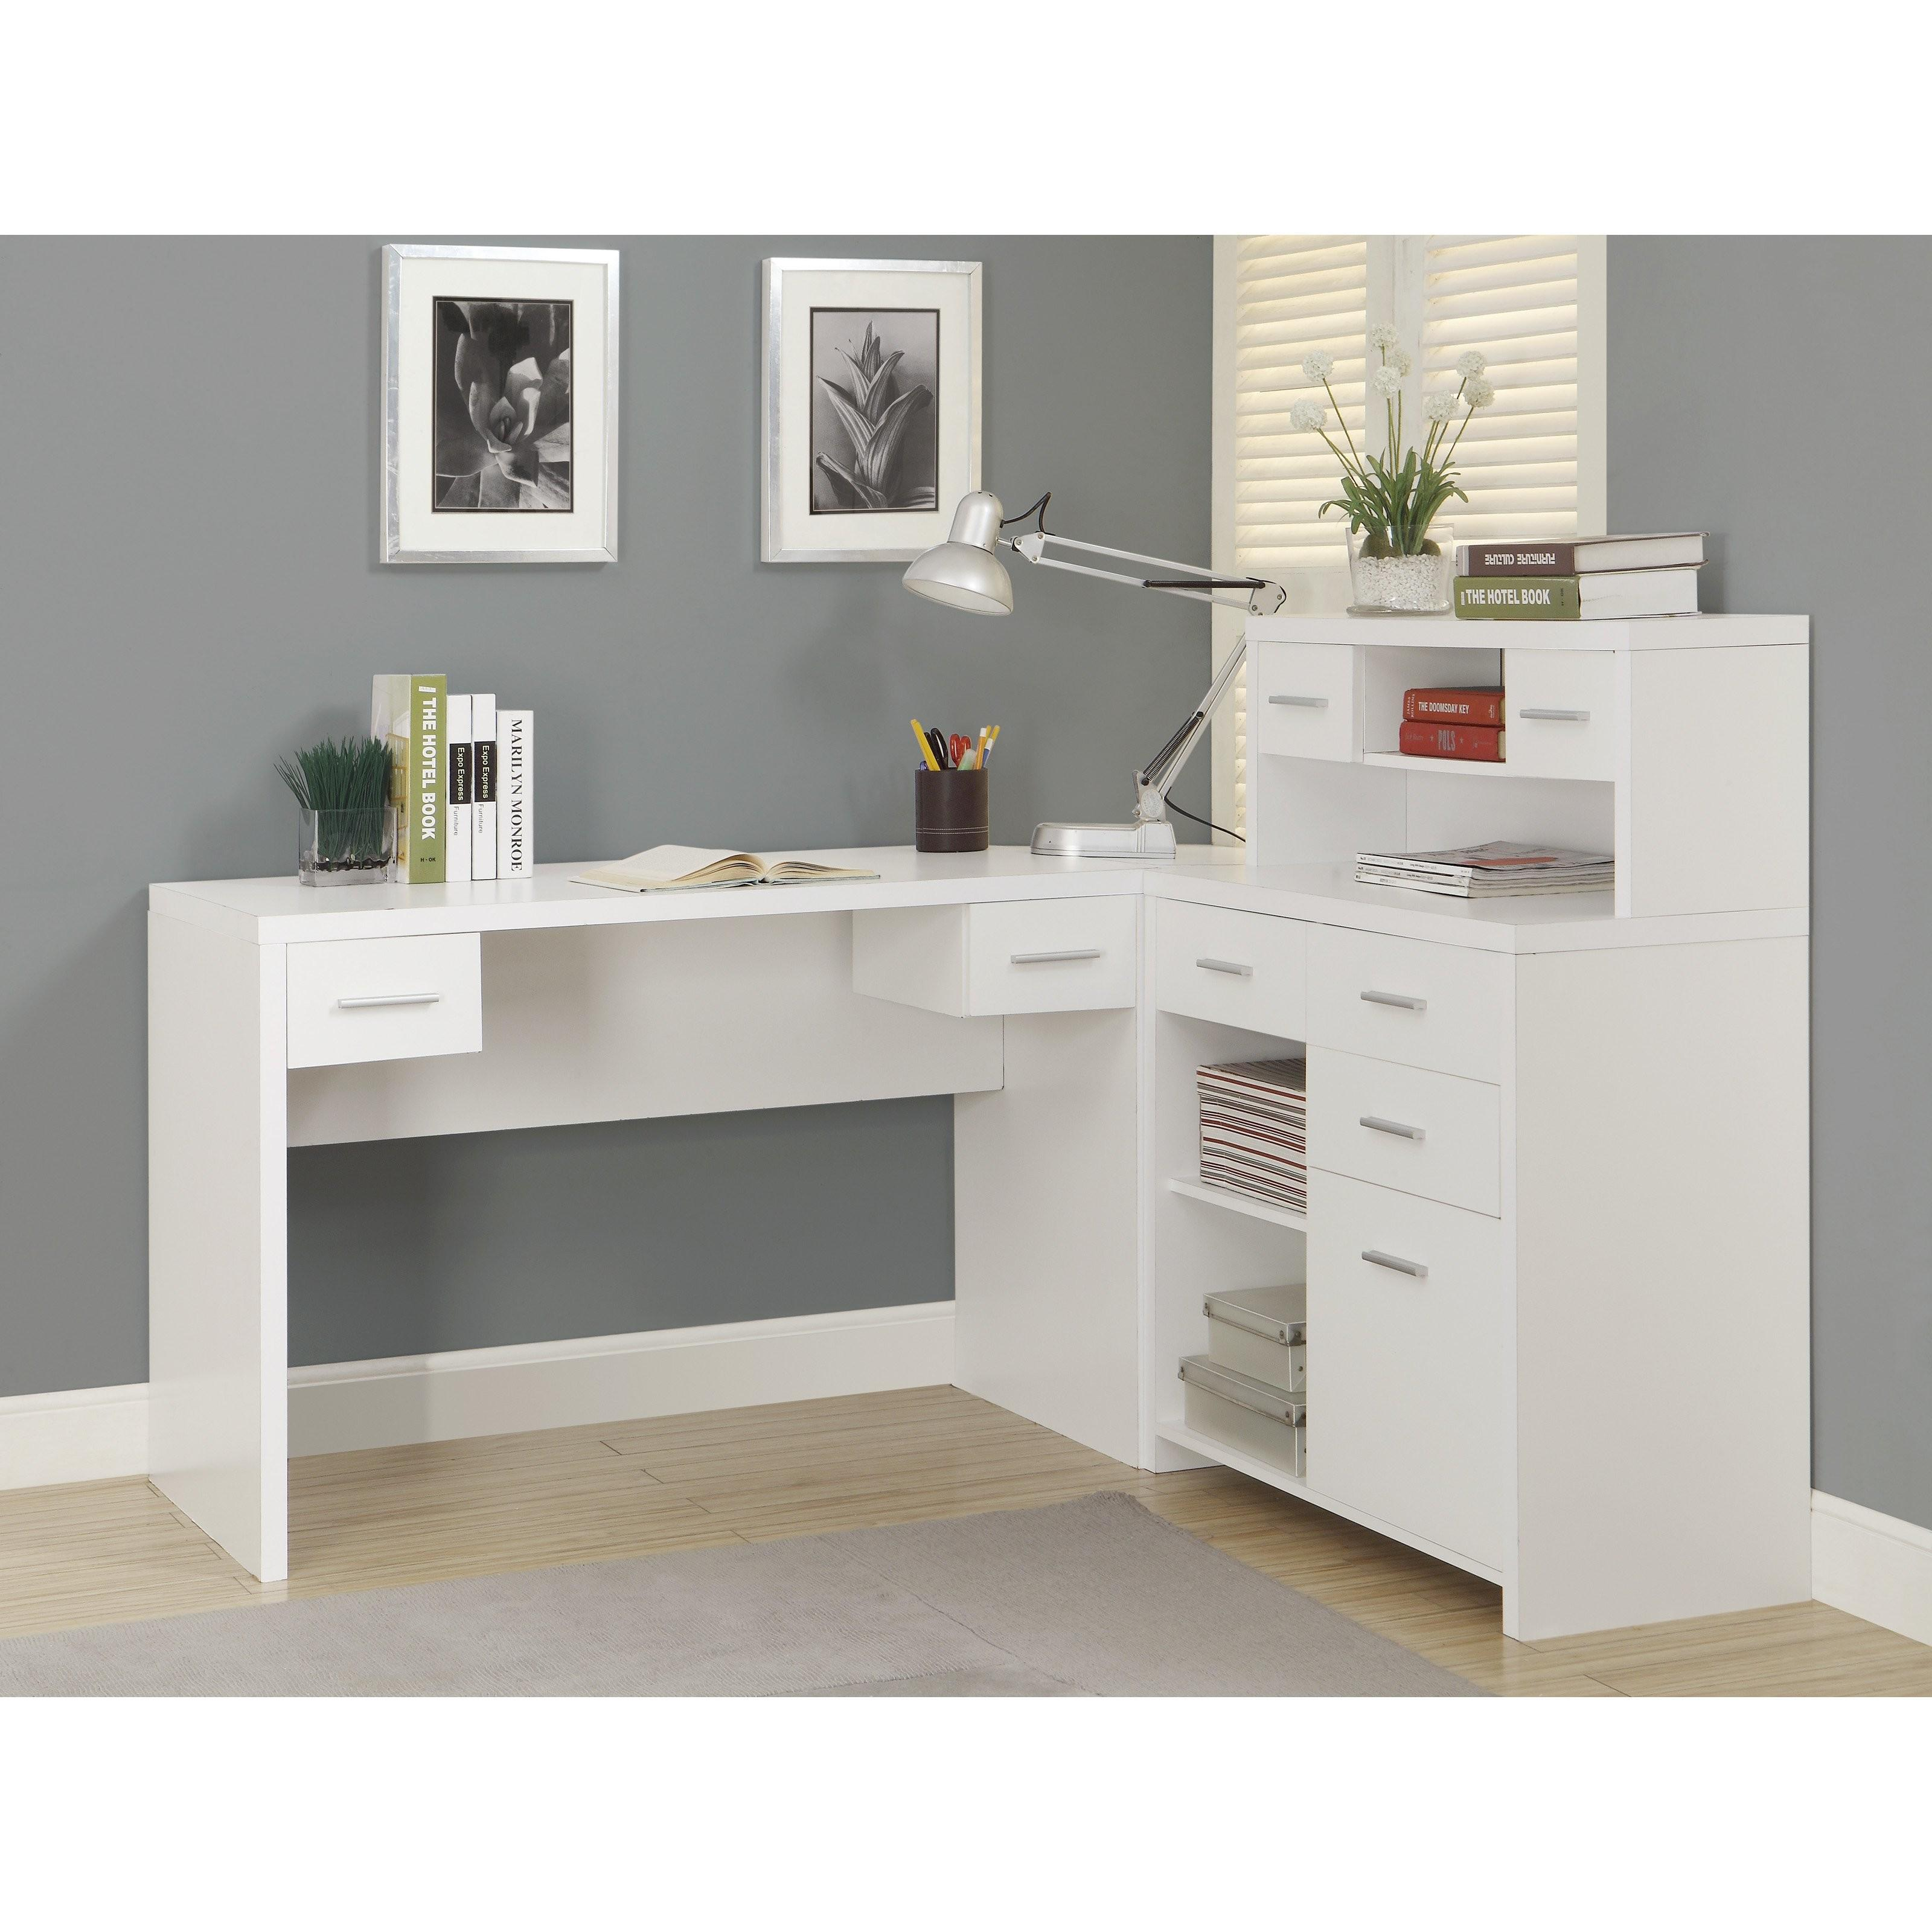 Monarch Hollow Core Shaped Home Office Desk White